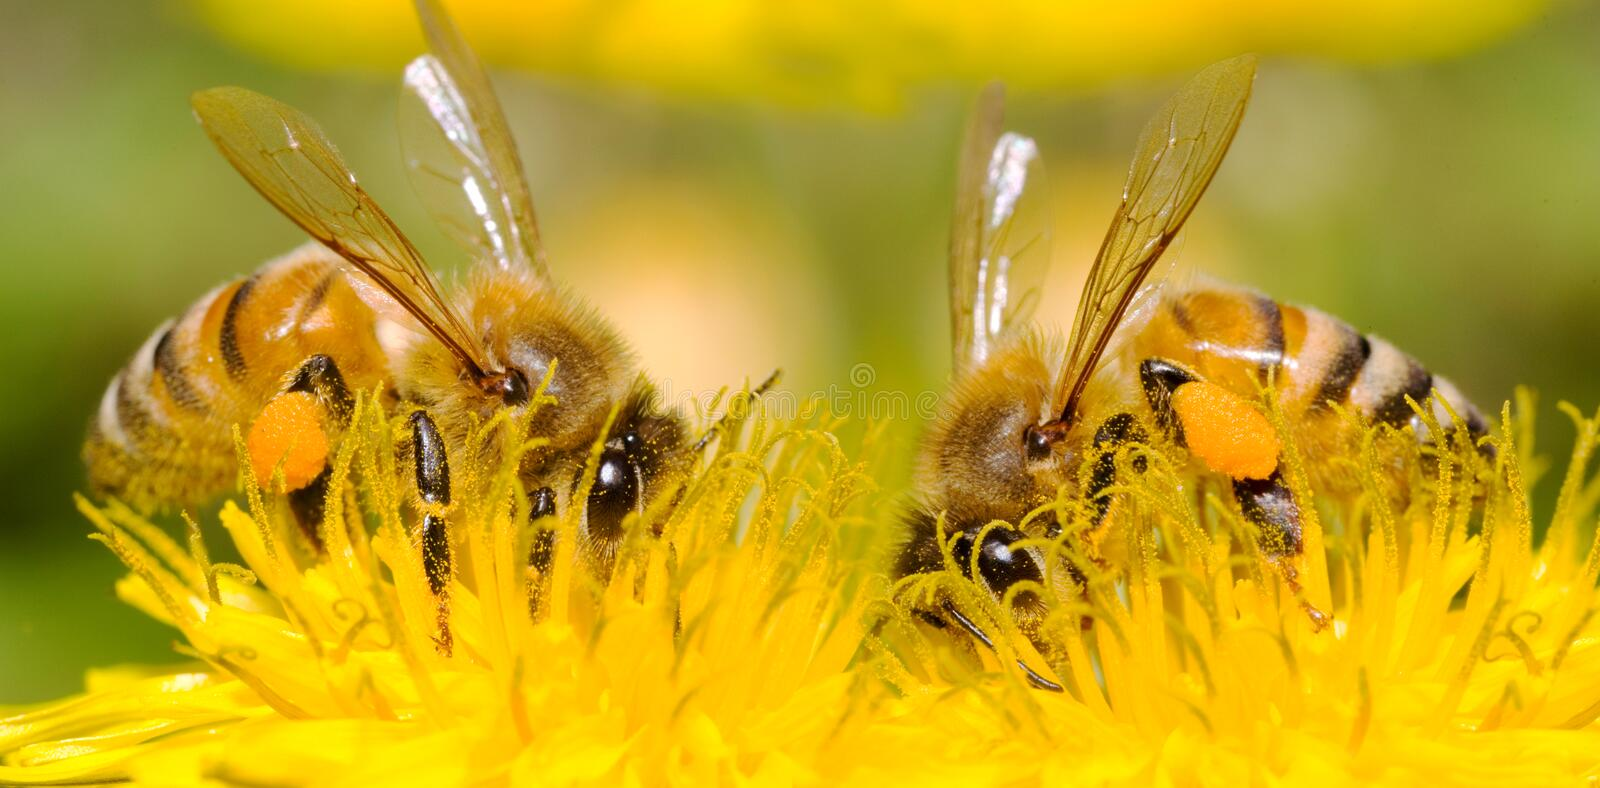 Two Bees and dandelion flower royalty free stock image